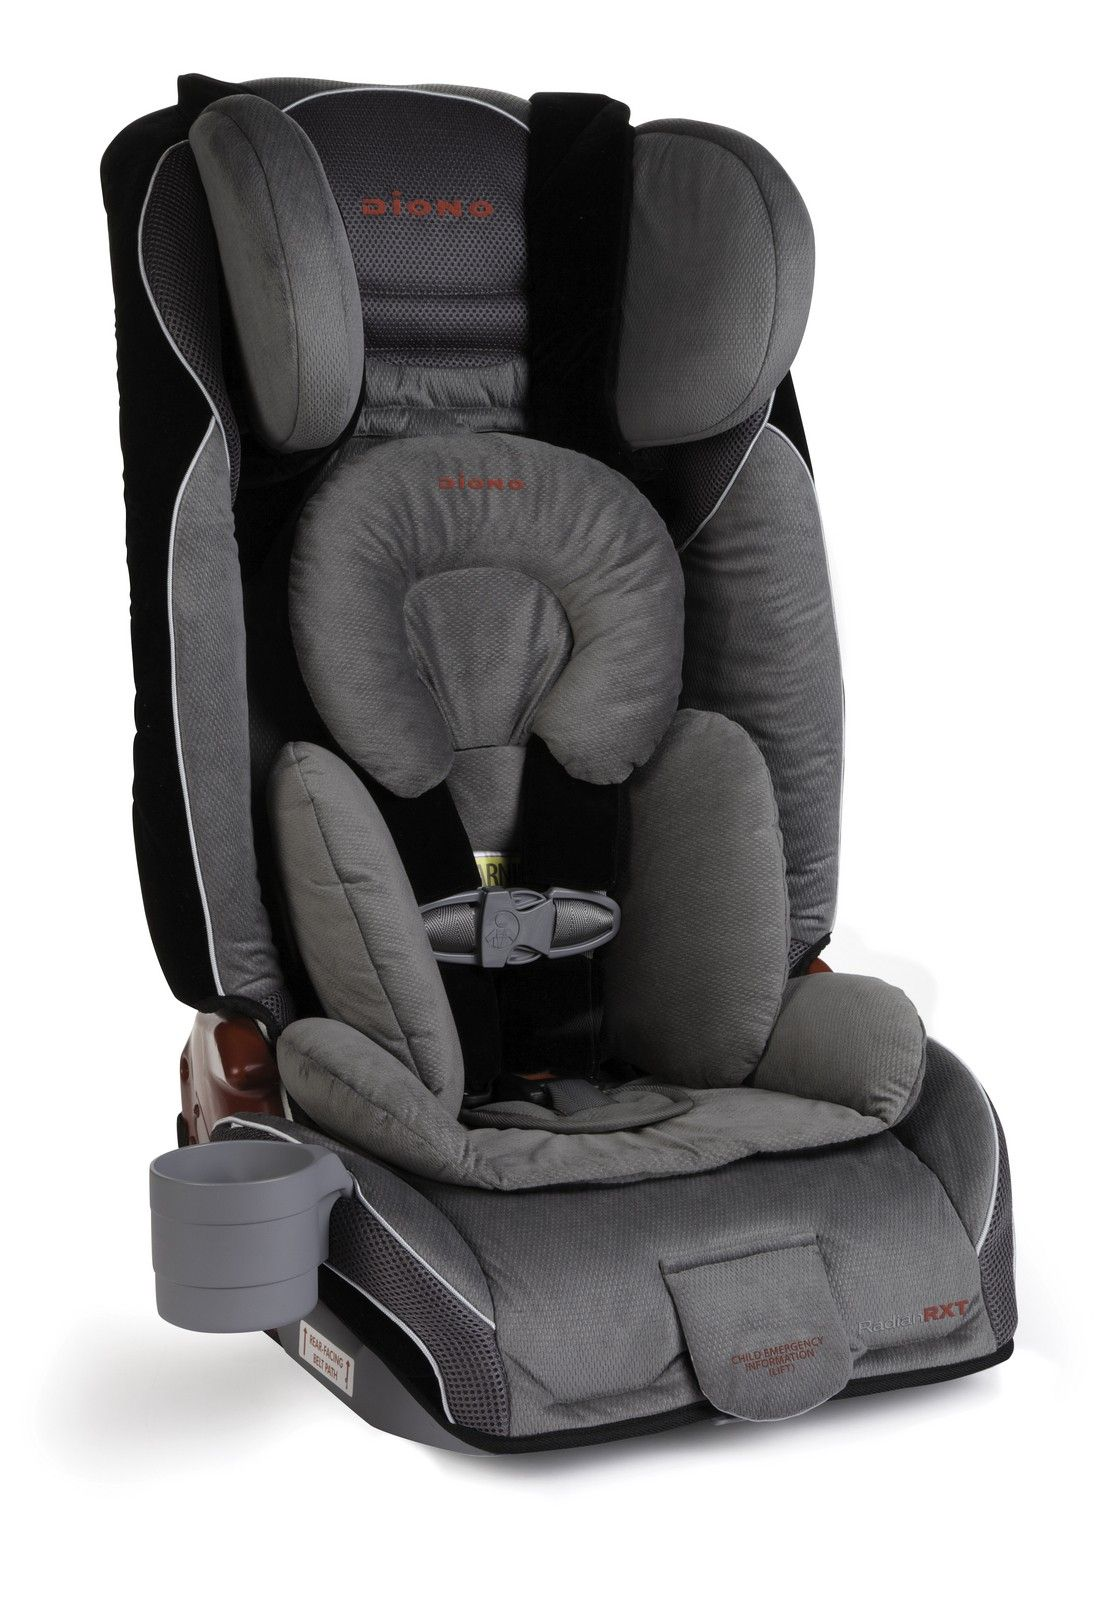 299.99 Great deal on the Diono Radian RXT Baby car